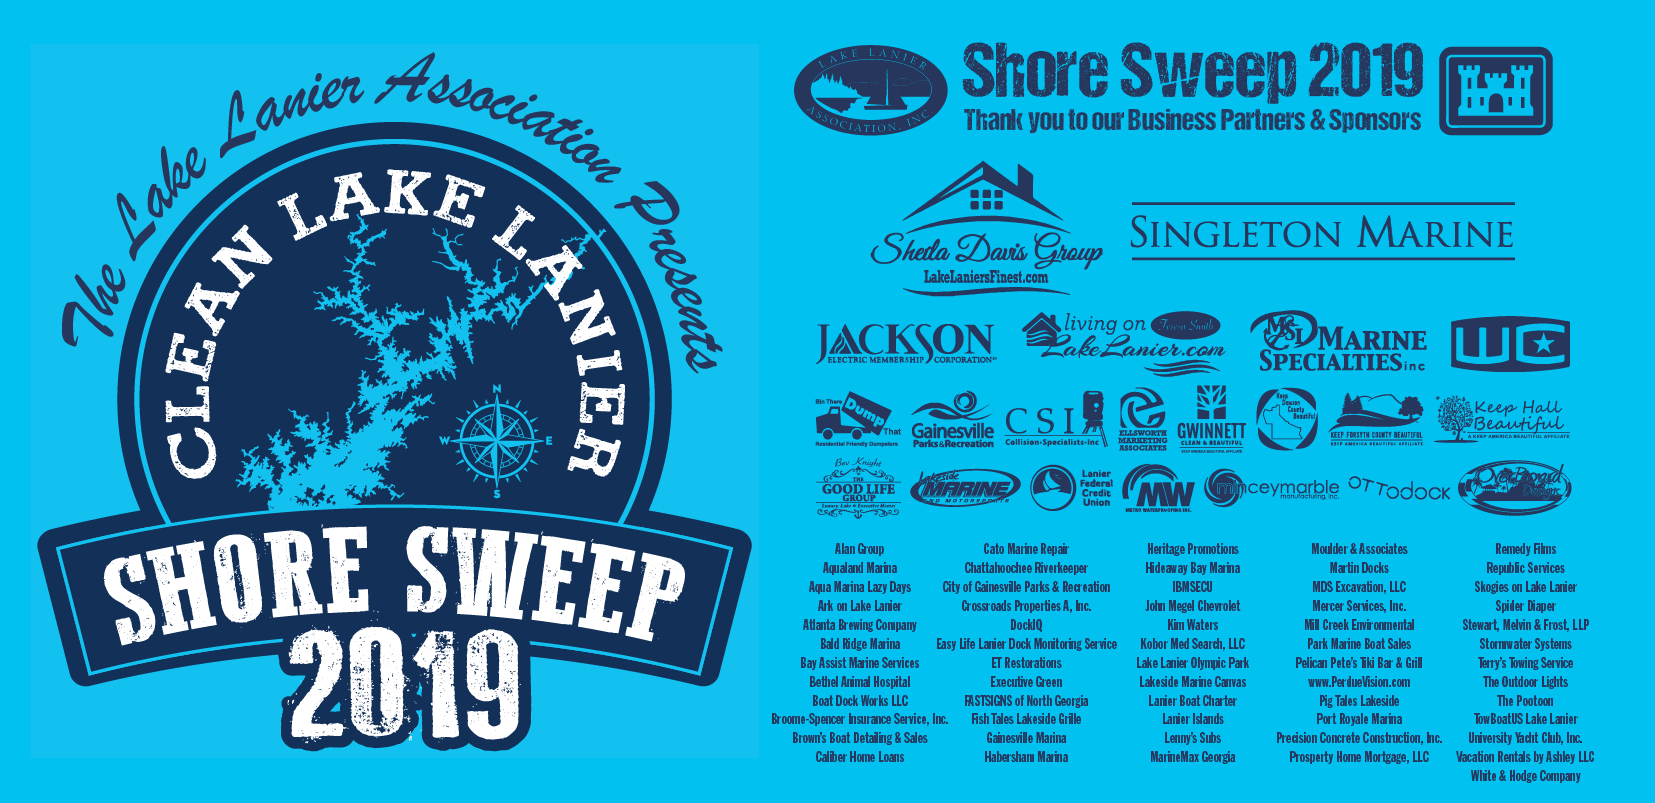 lake lanier association shore sweep GA 2019 Georgia